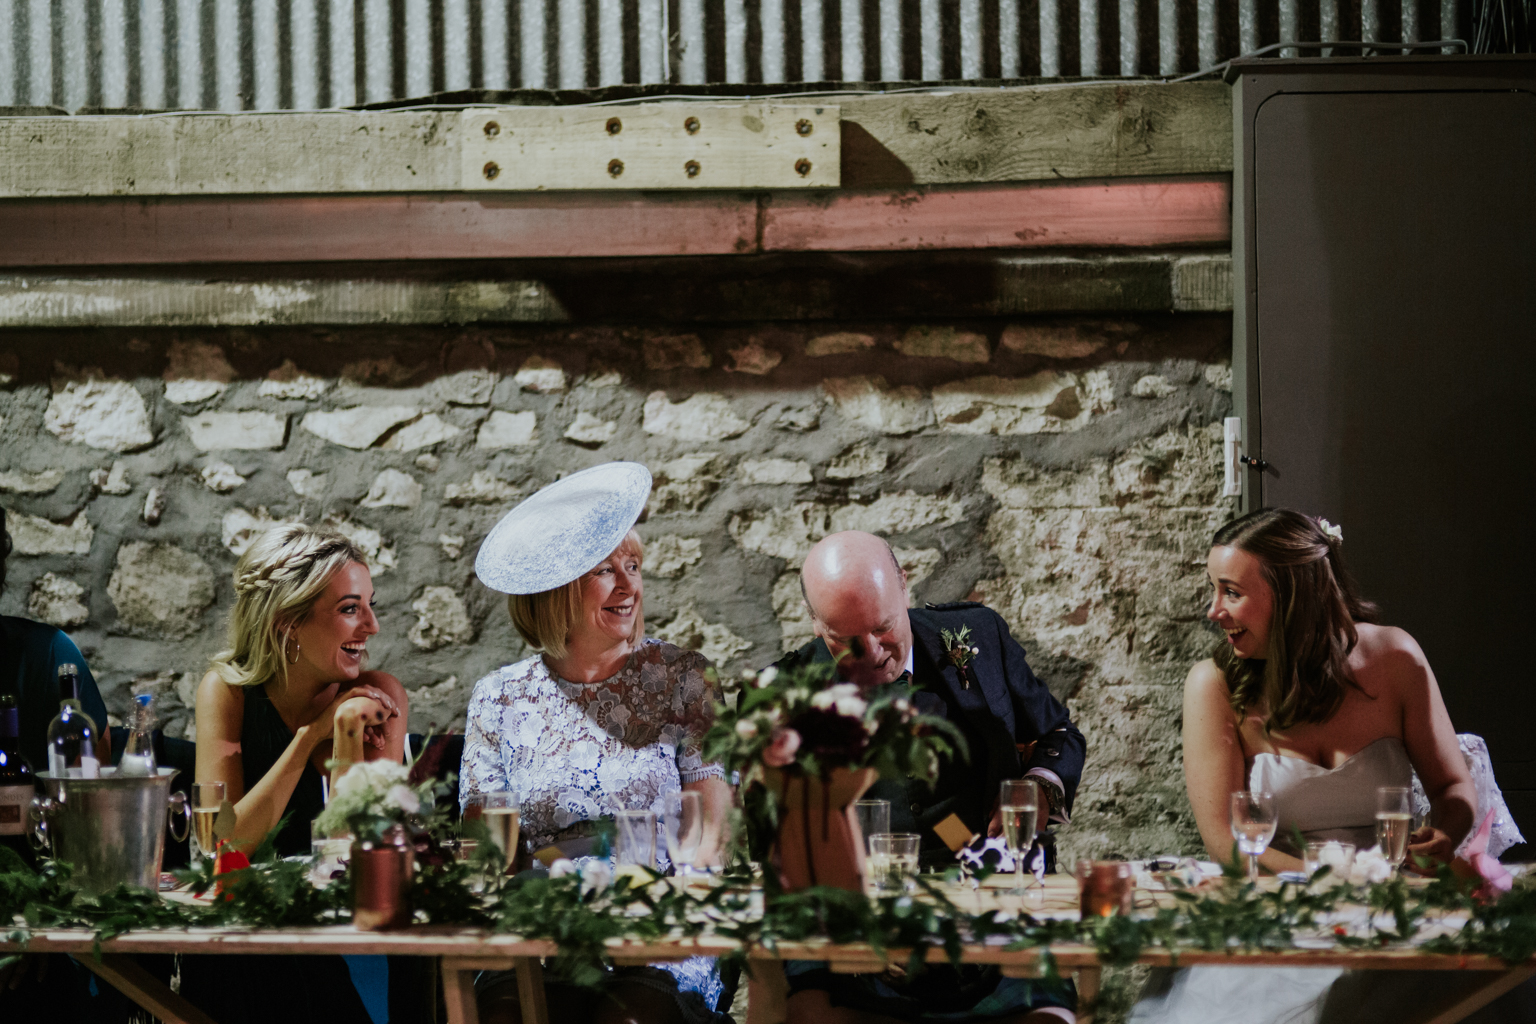 Bride, her mum, dad and bridesmaid are laughing at the wedding reception during the speech at Harelaw farm DIY wedding.